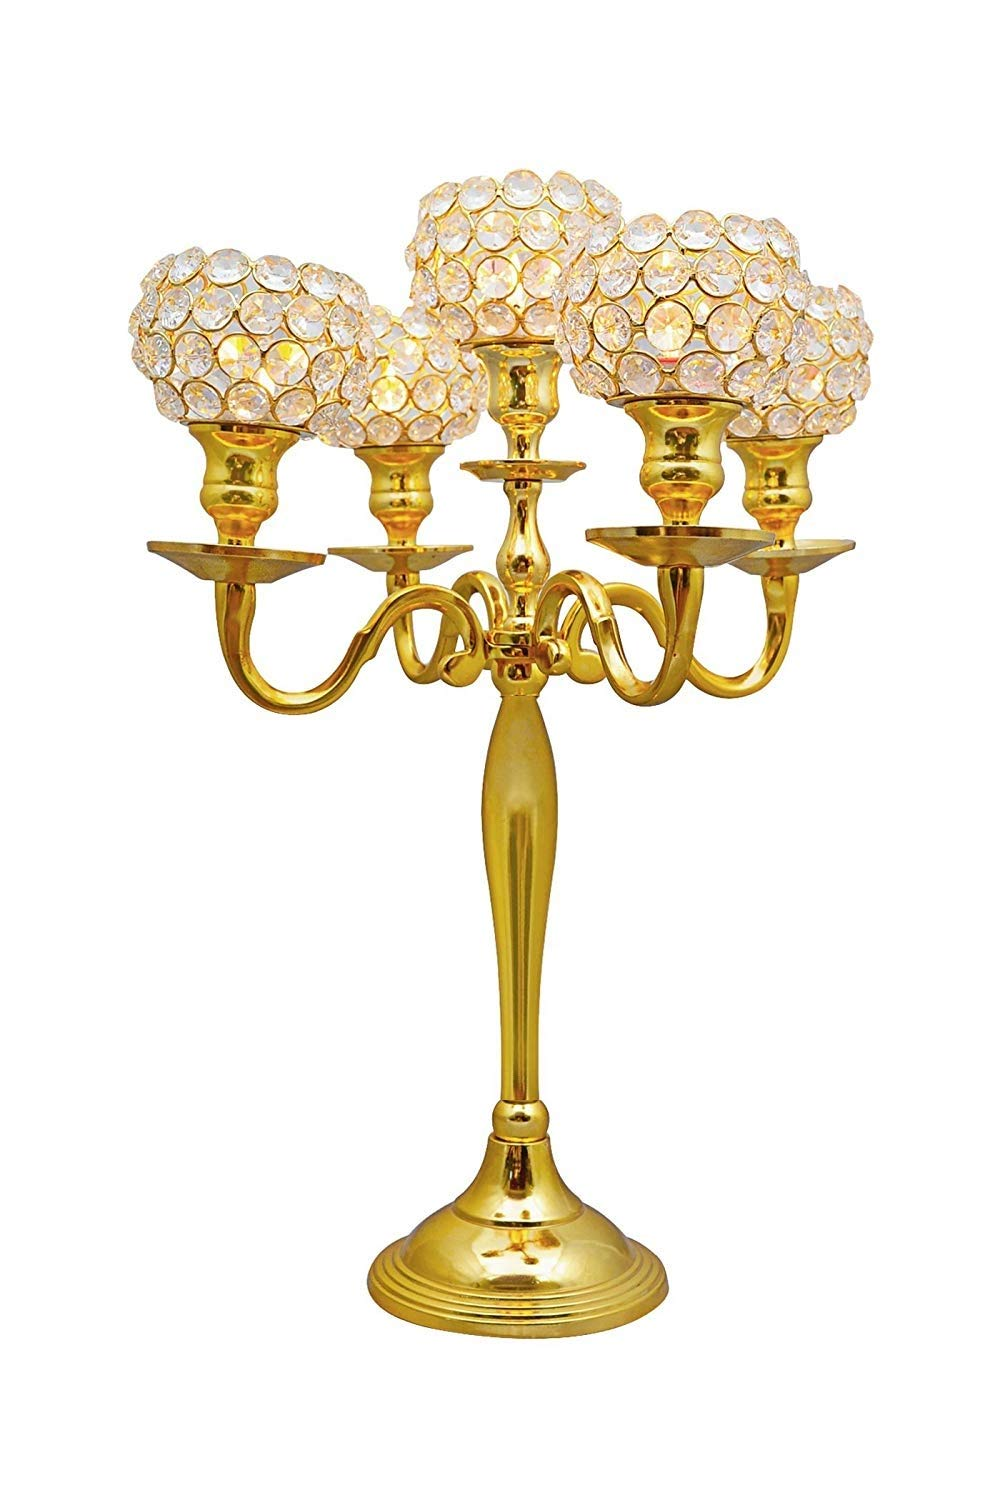 Simcs Handicrafts Set of 4 Piece Wholesale 20 Inch Small 5 Arm Gold Crystal Globe Candelabra for Wedding Centerpieces Votive Tealight Candle Holders Bulk